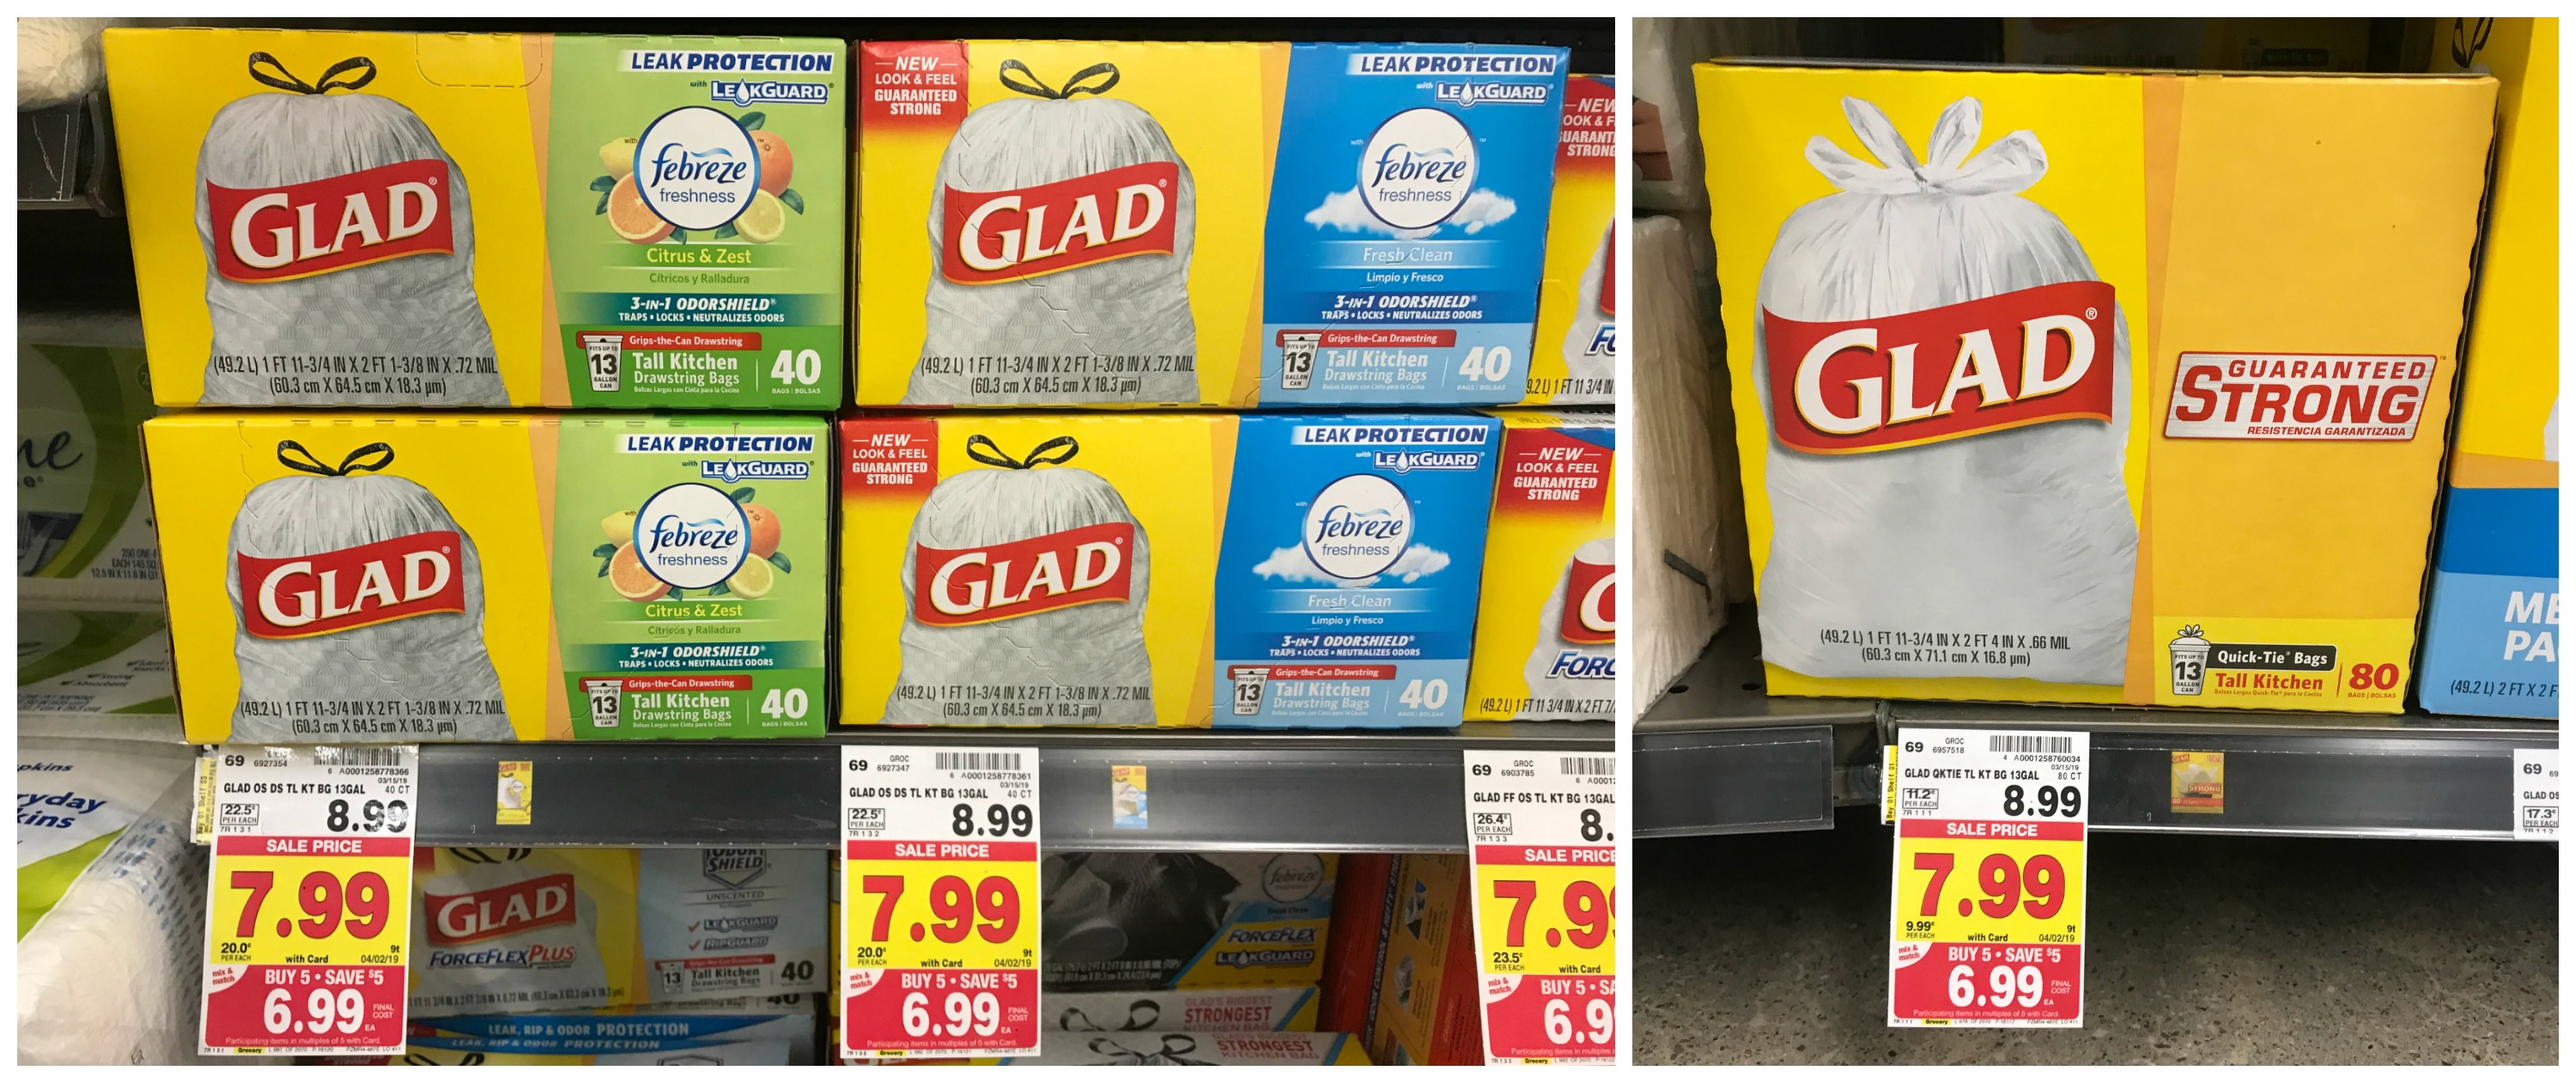 photograph regarding Glad Trash Bags Printable Coupon referred to as Content Trash Baggage Merely $5.99 at Kroger! (Reg Cost $8.99